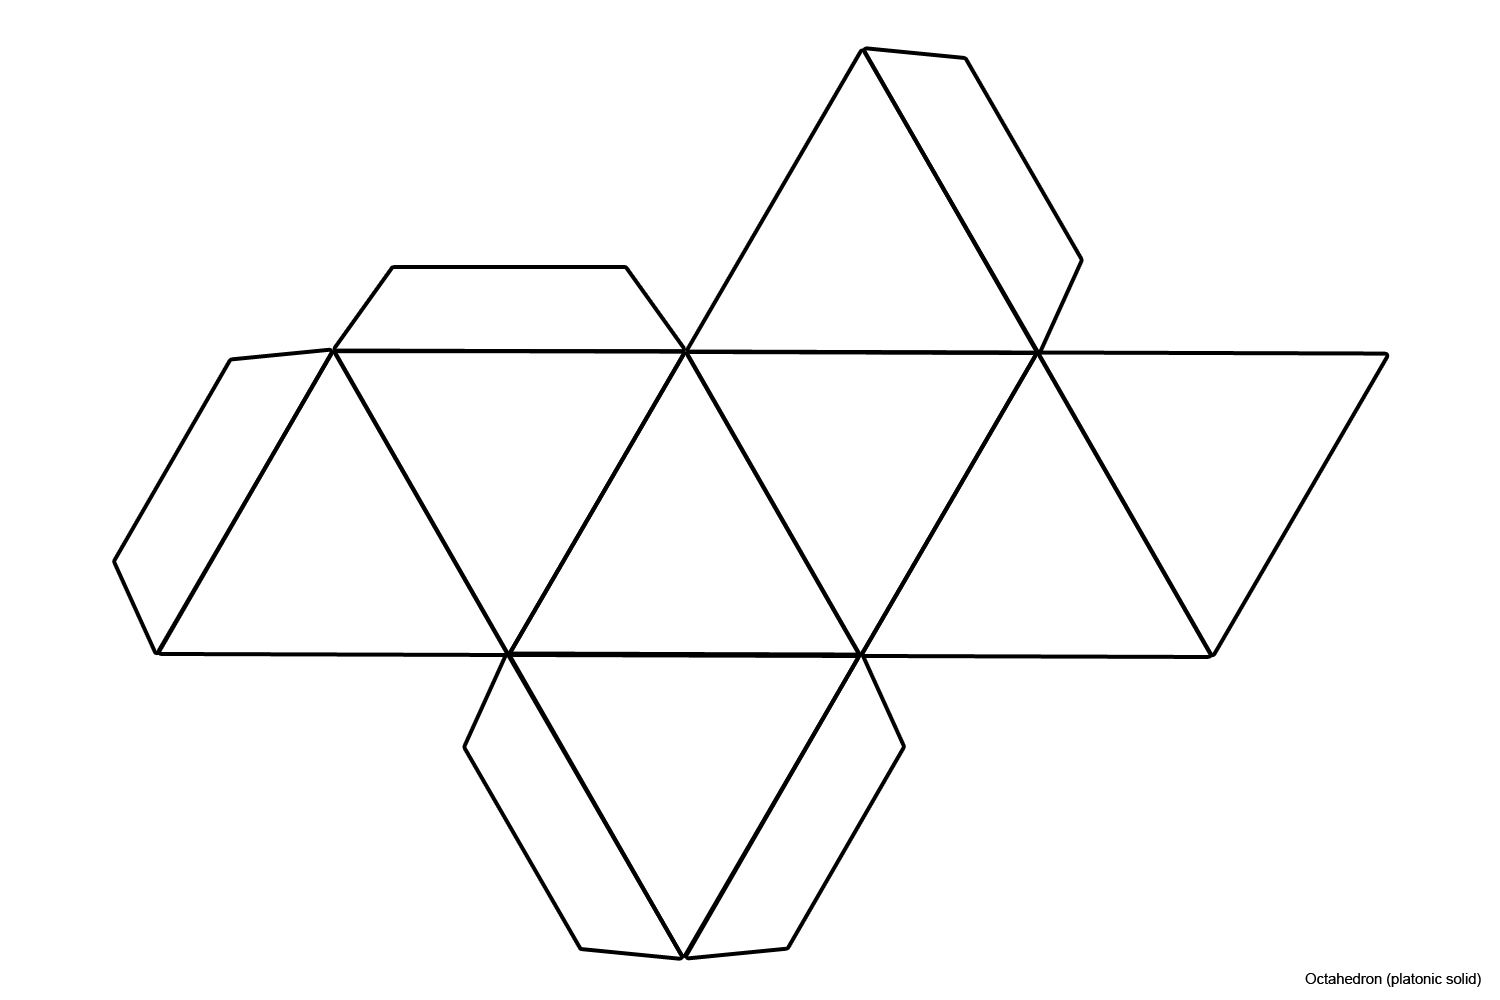 octahedron template - Google Search | Foldables for Math - photo#32